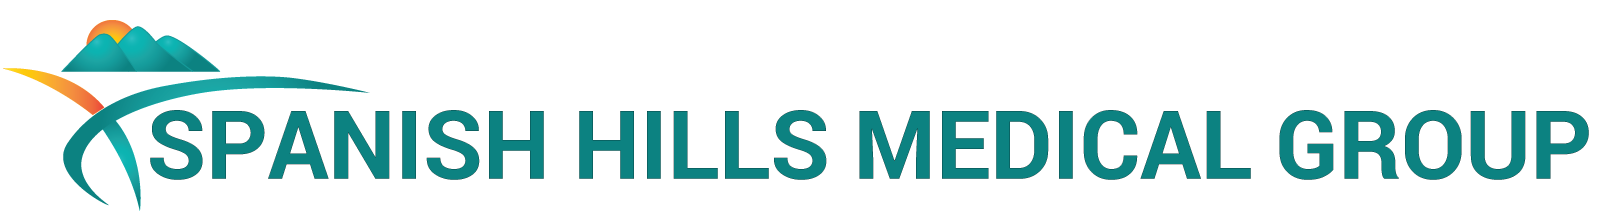 Spanish Hills Medical Group